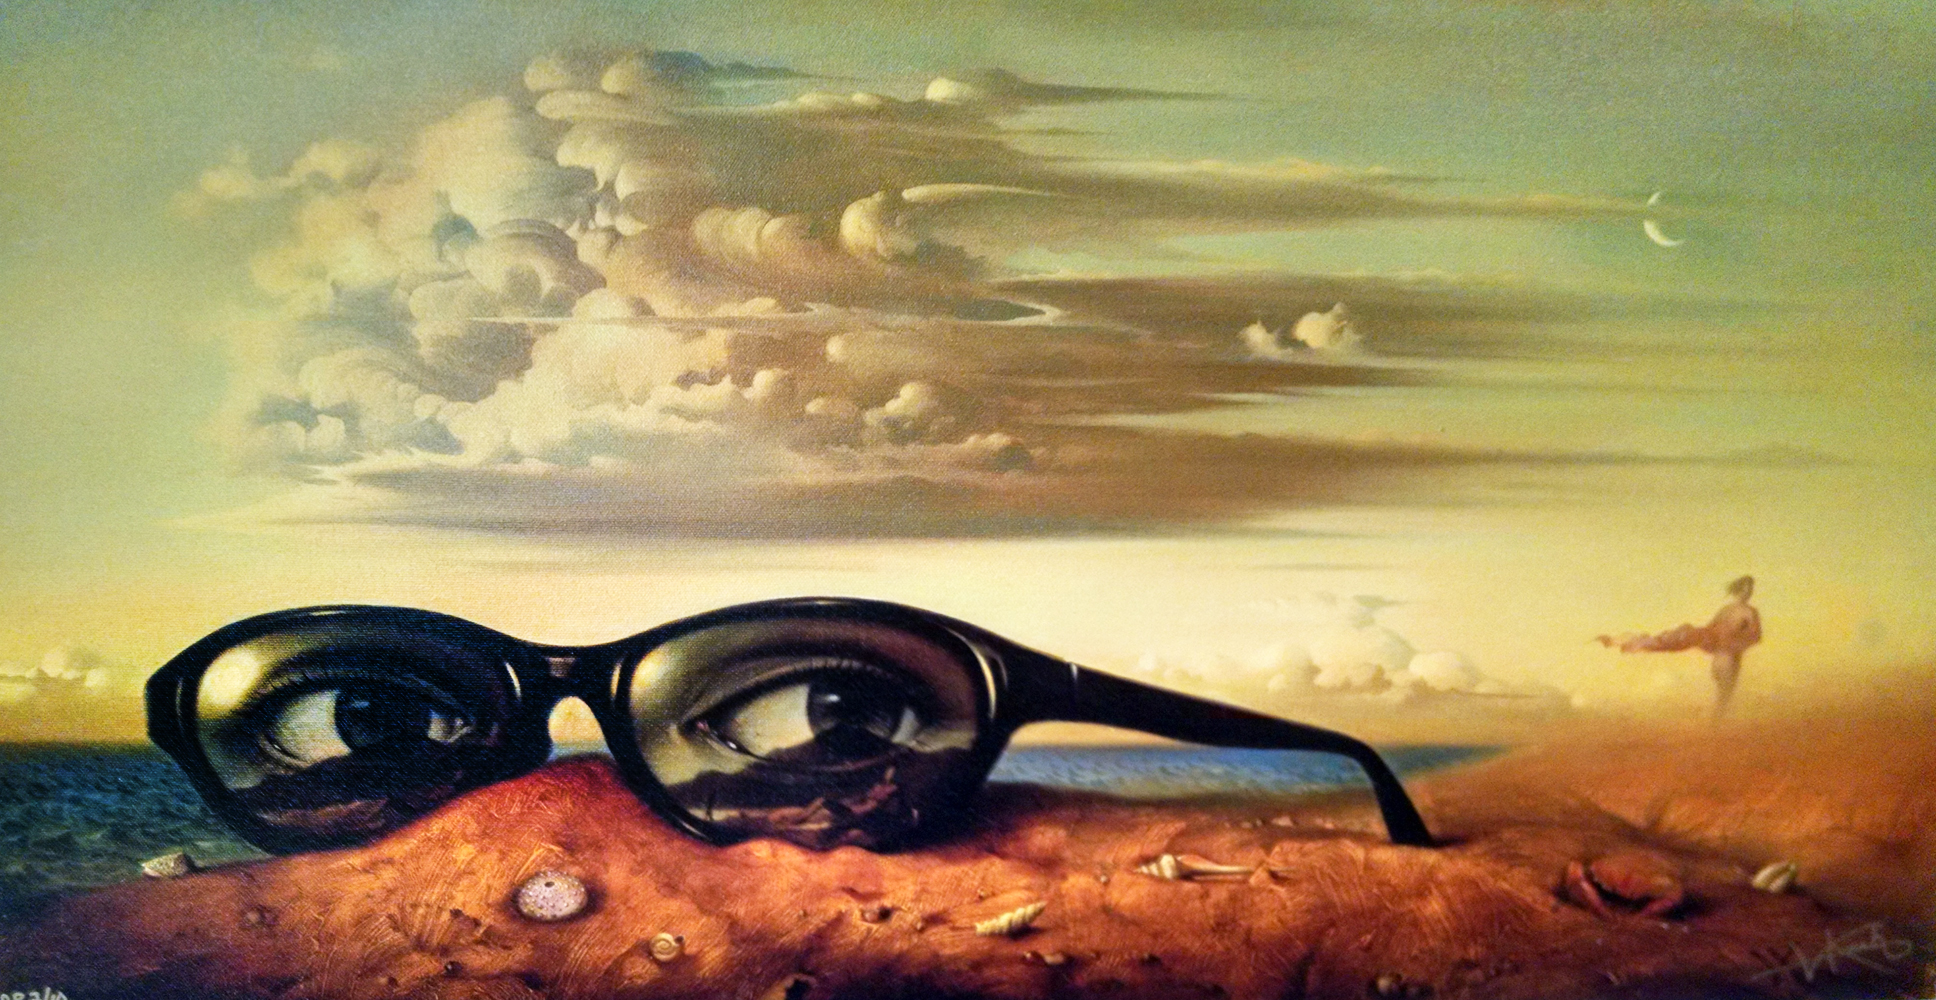 Vladimir kush art for sale for Art print for sale